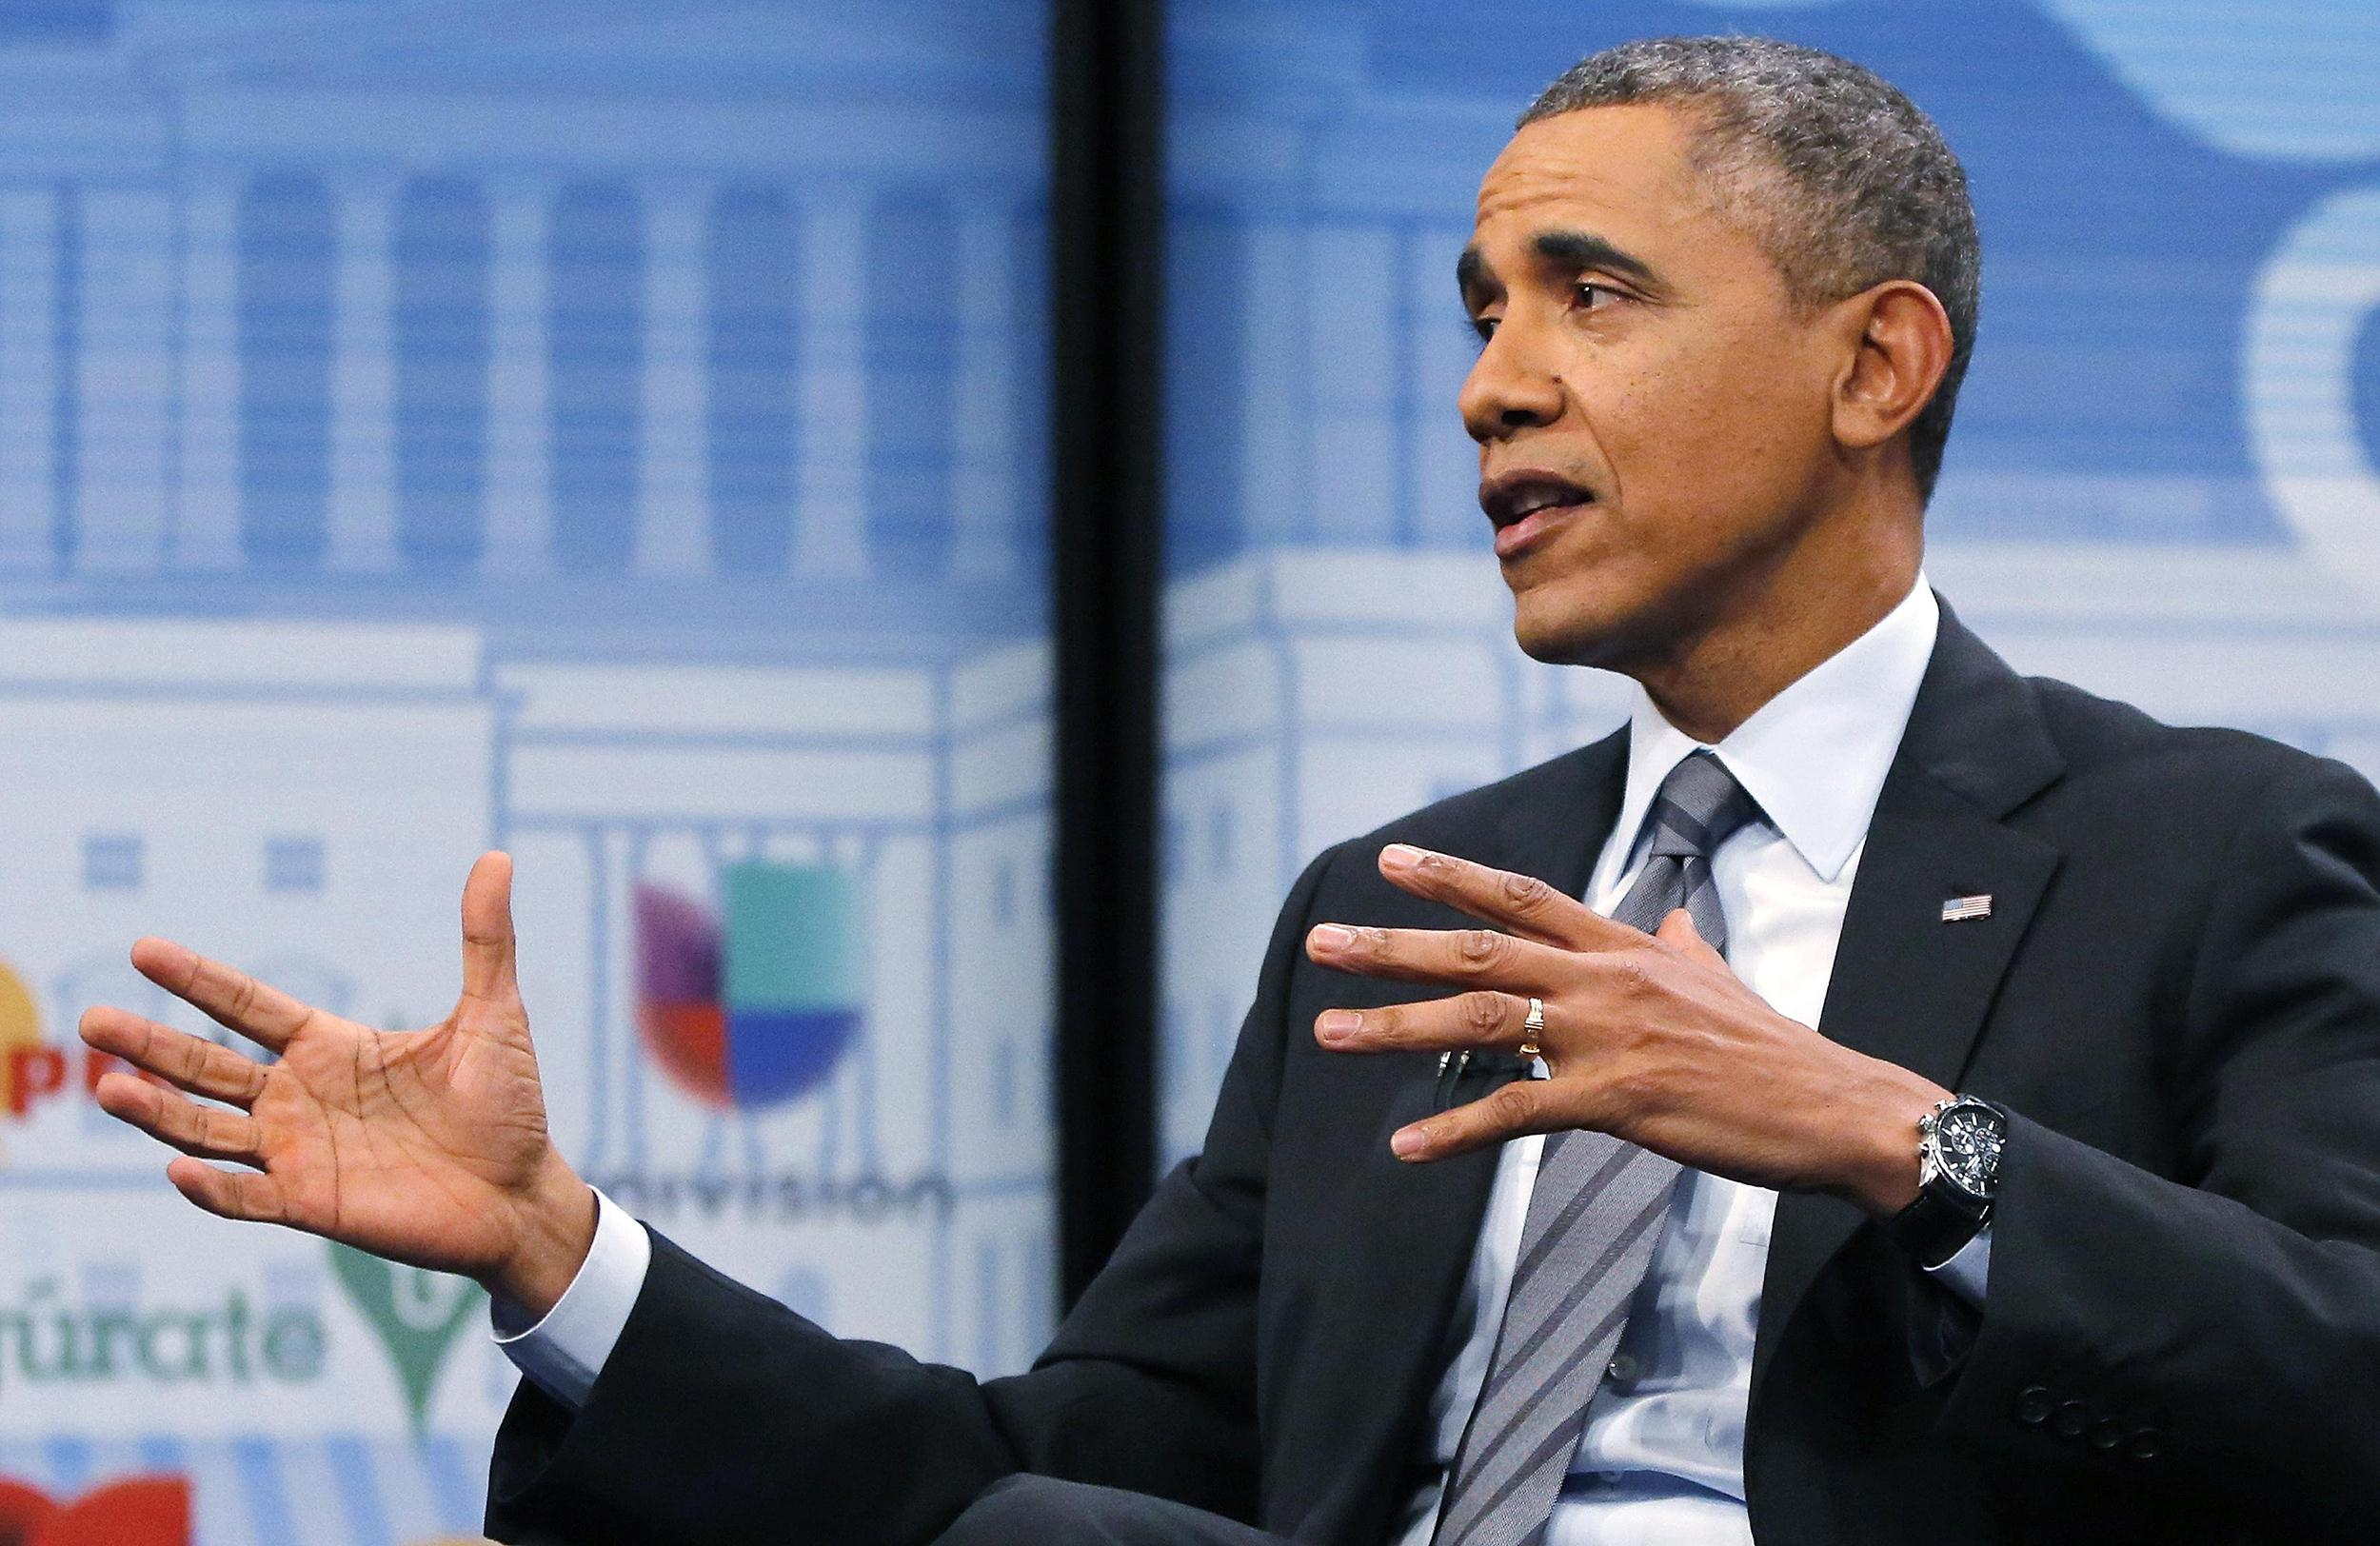 Image: President Obama participates in a town hall-style forum to encourage Latino Americans to enroll in Obamacare health insurance plans, at the Newseum in Washington